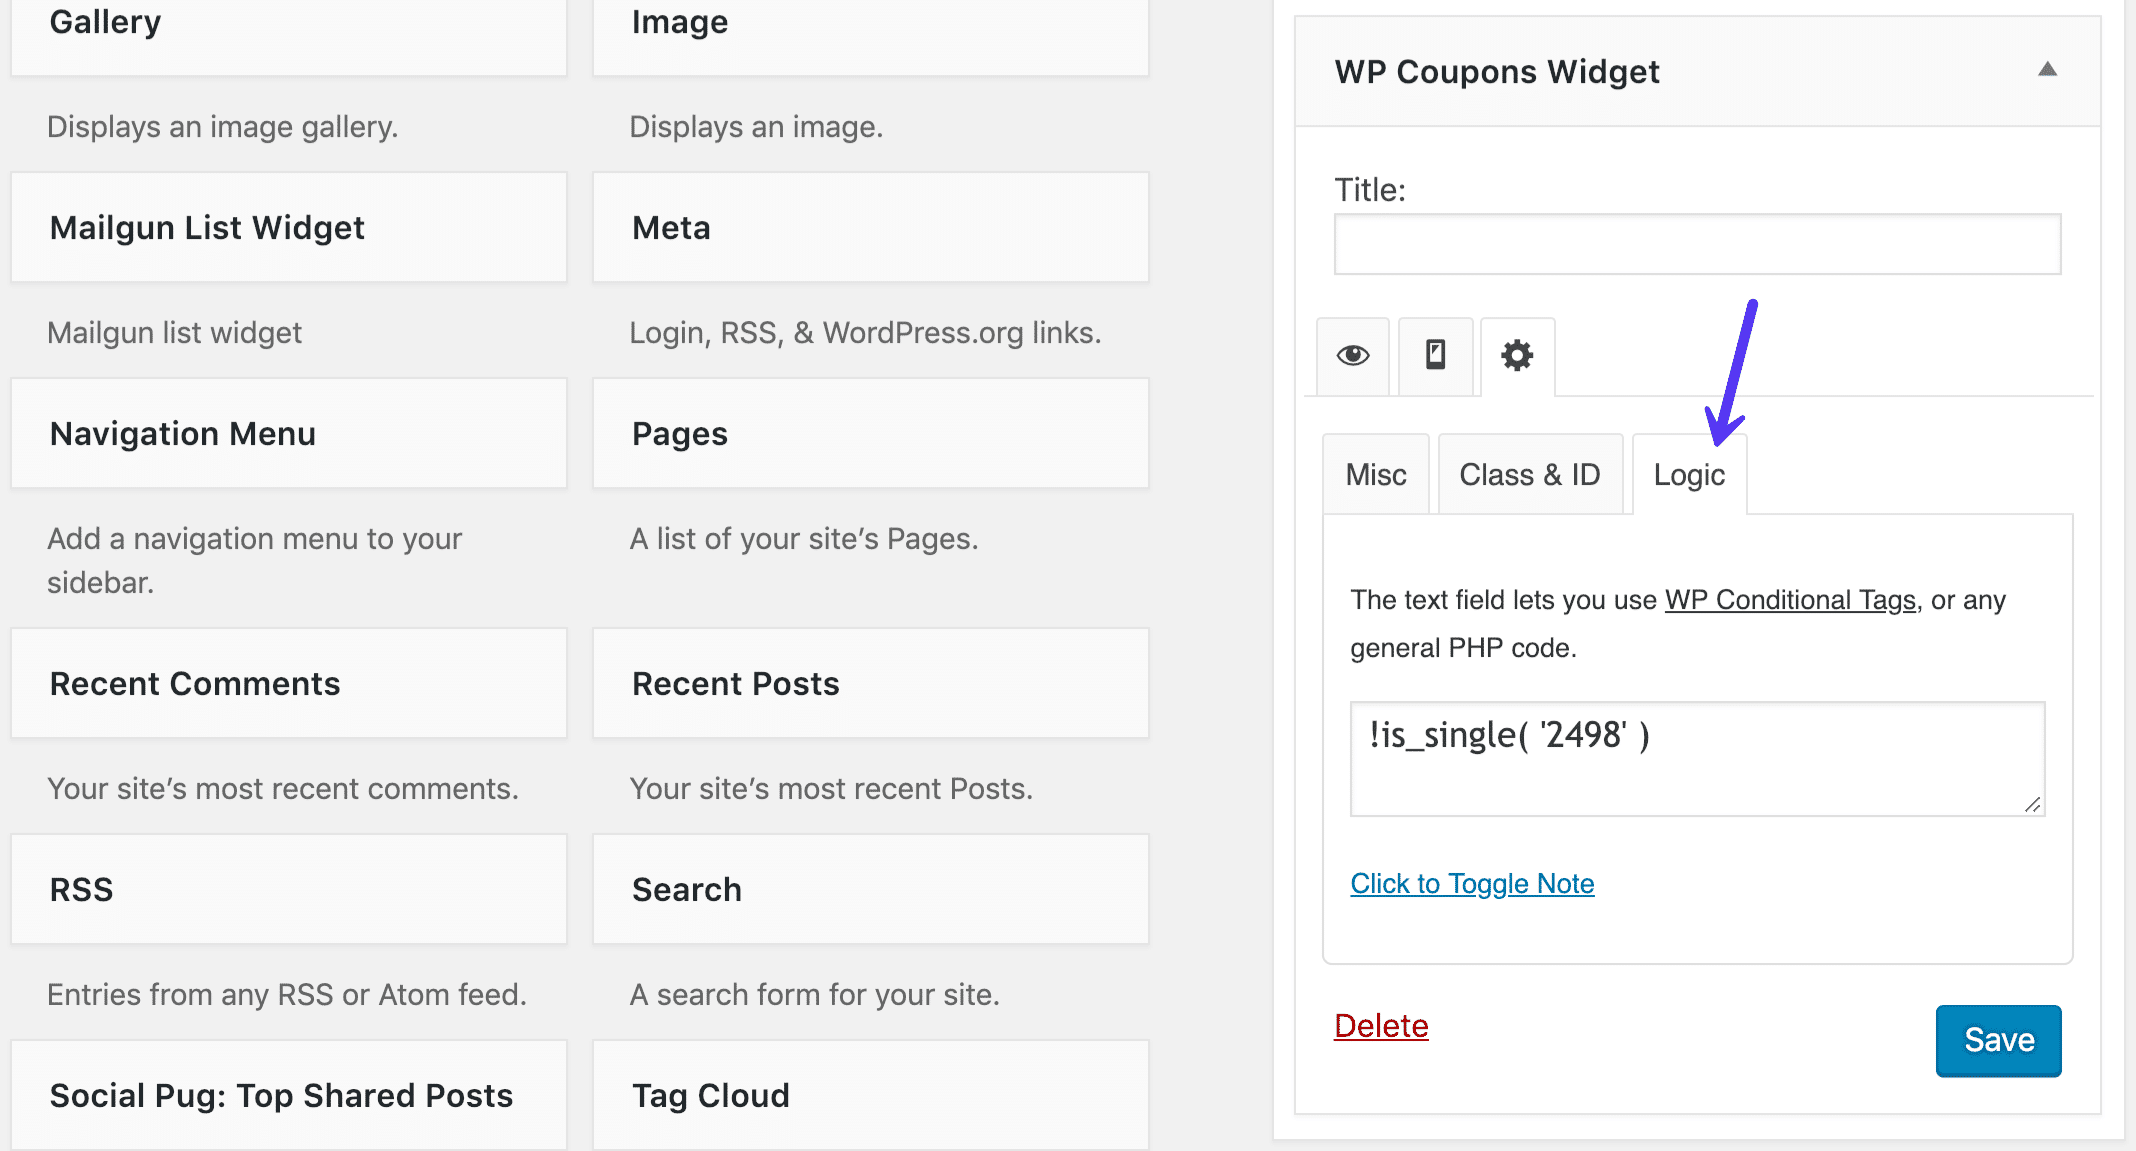 Lógica del widget en WordPress